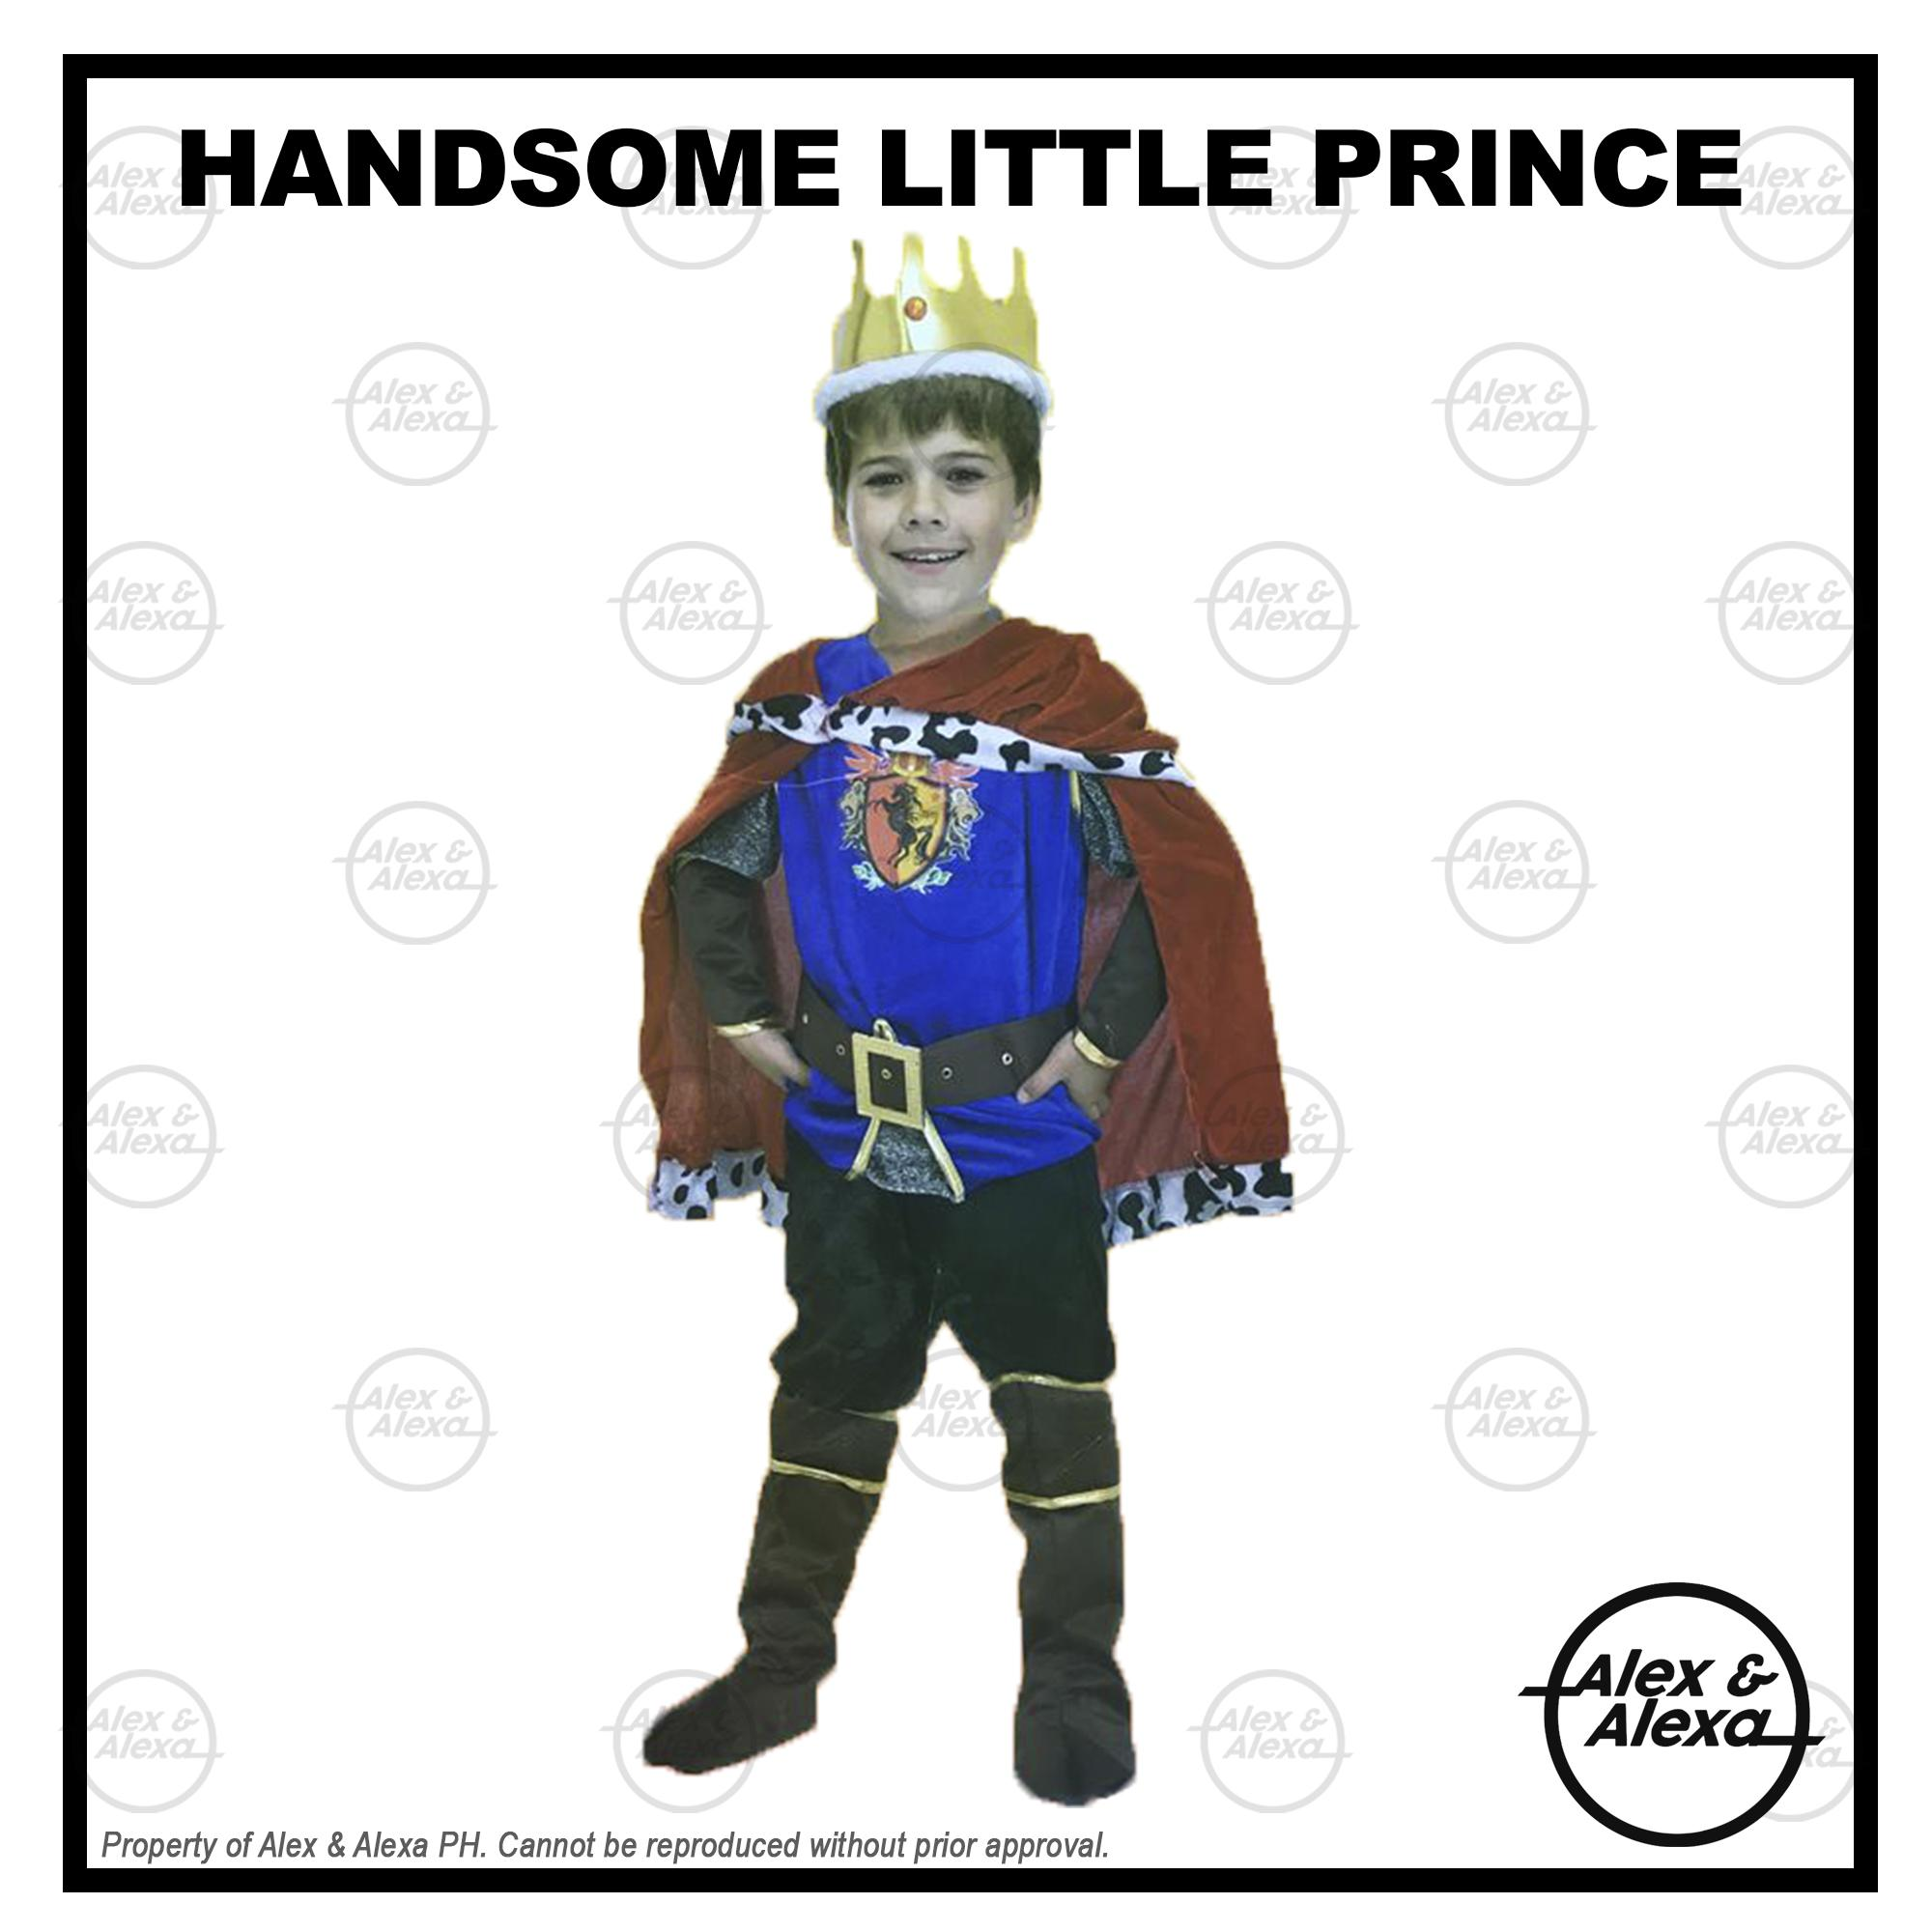 baby costumes for sale - costumes for toddlers online brands, prices